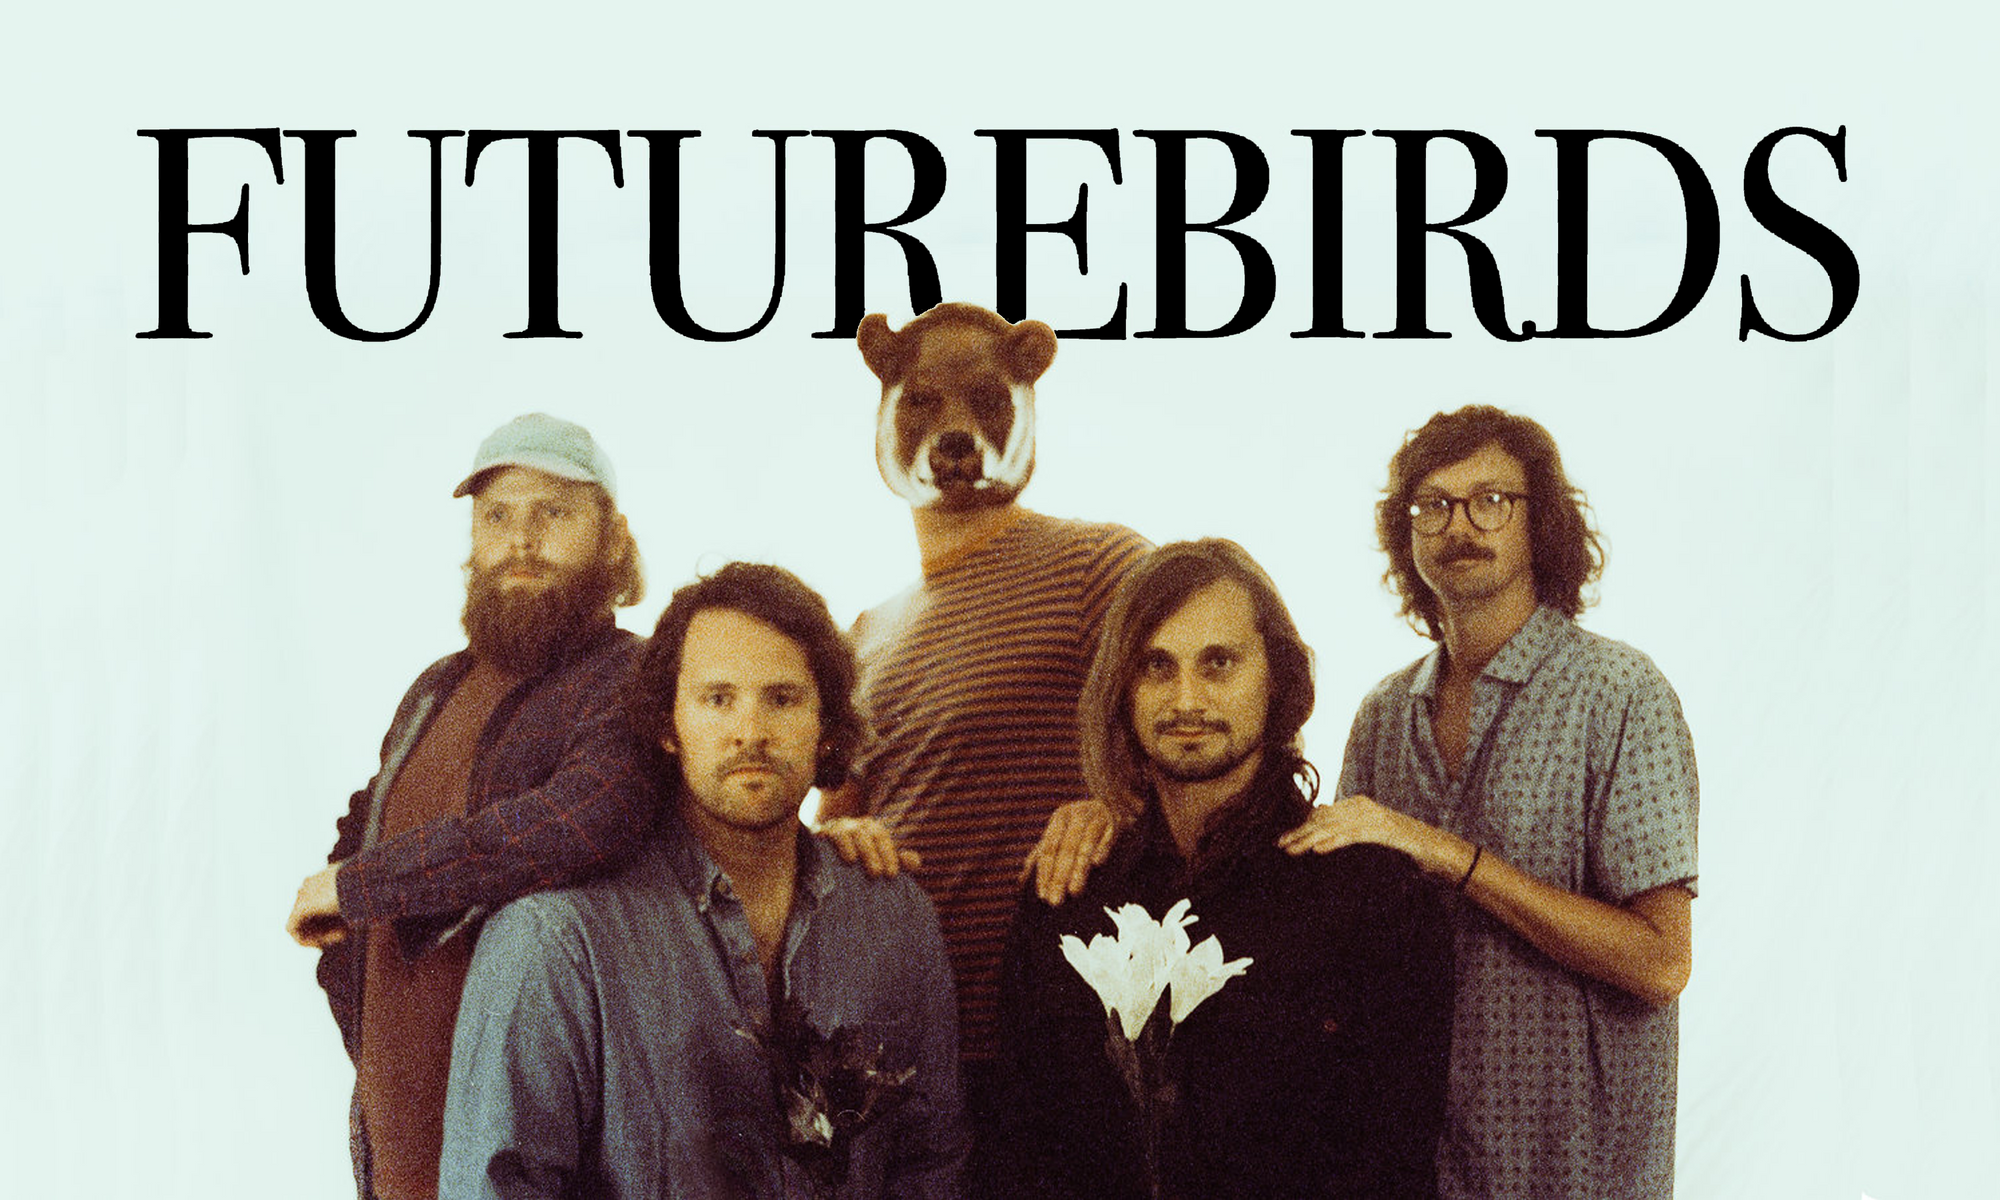 Futurebirds